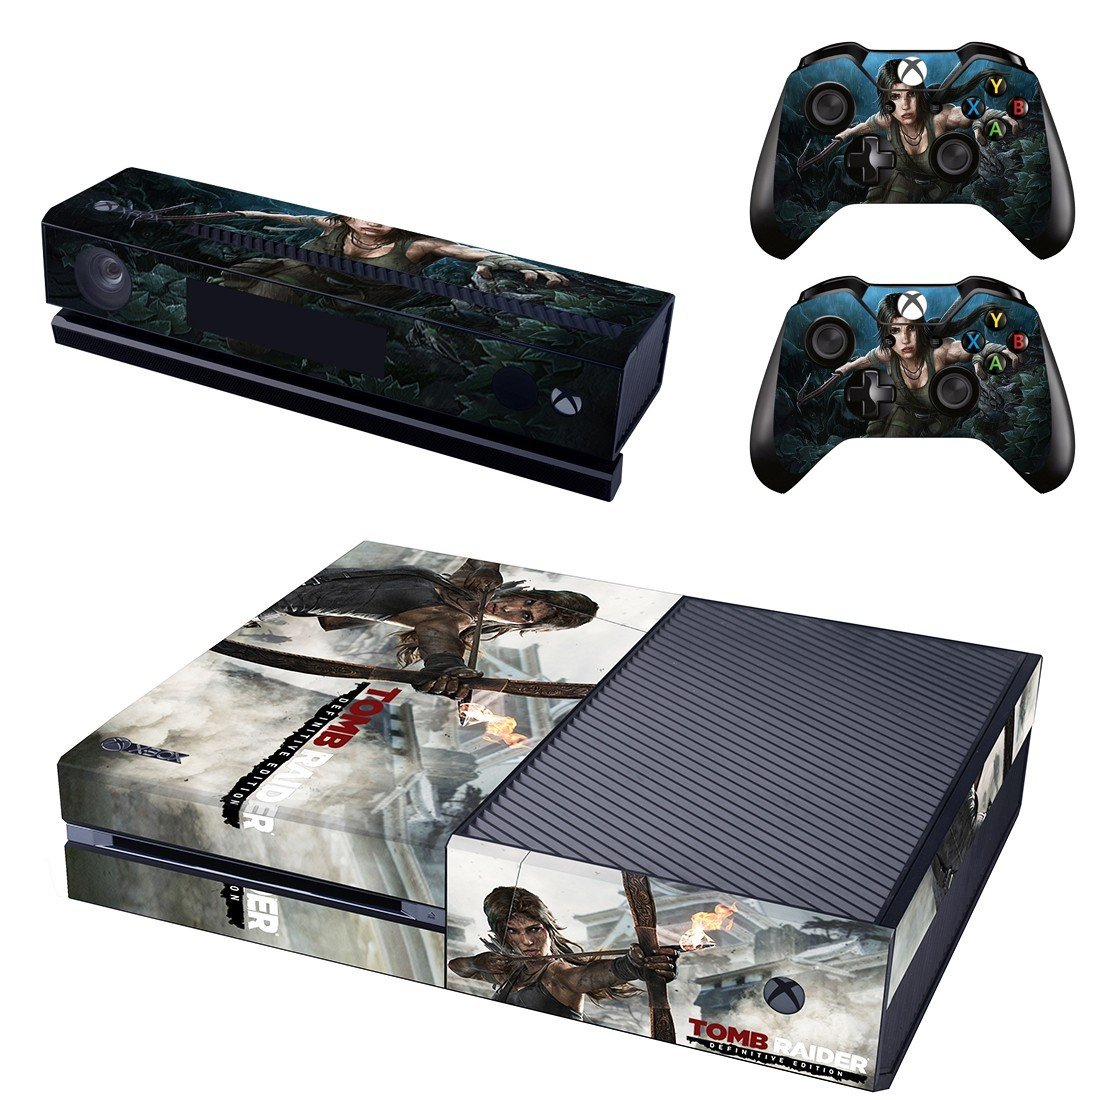 Tomb Raider xbox one skin for console and controllers